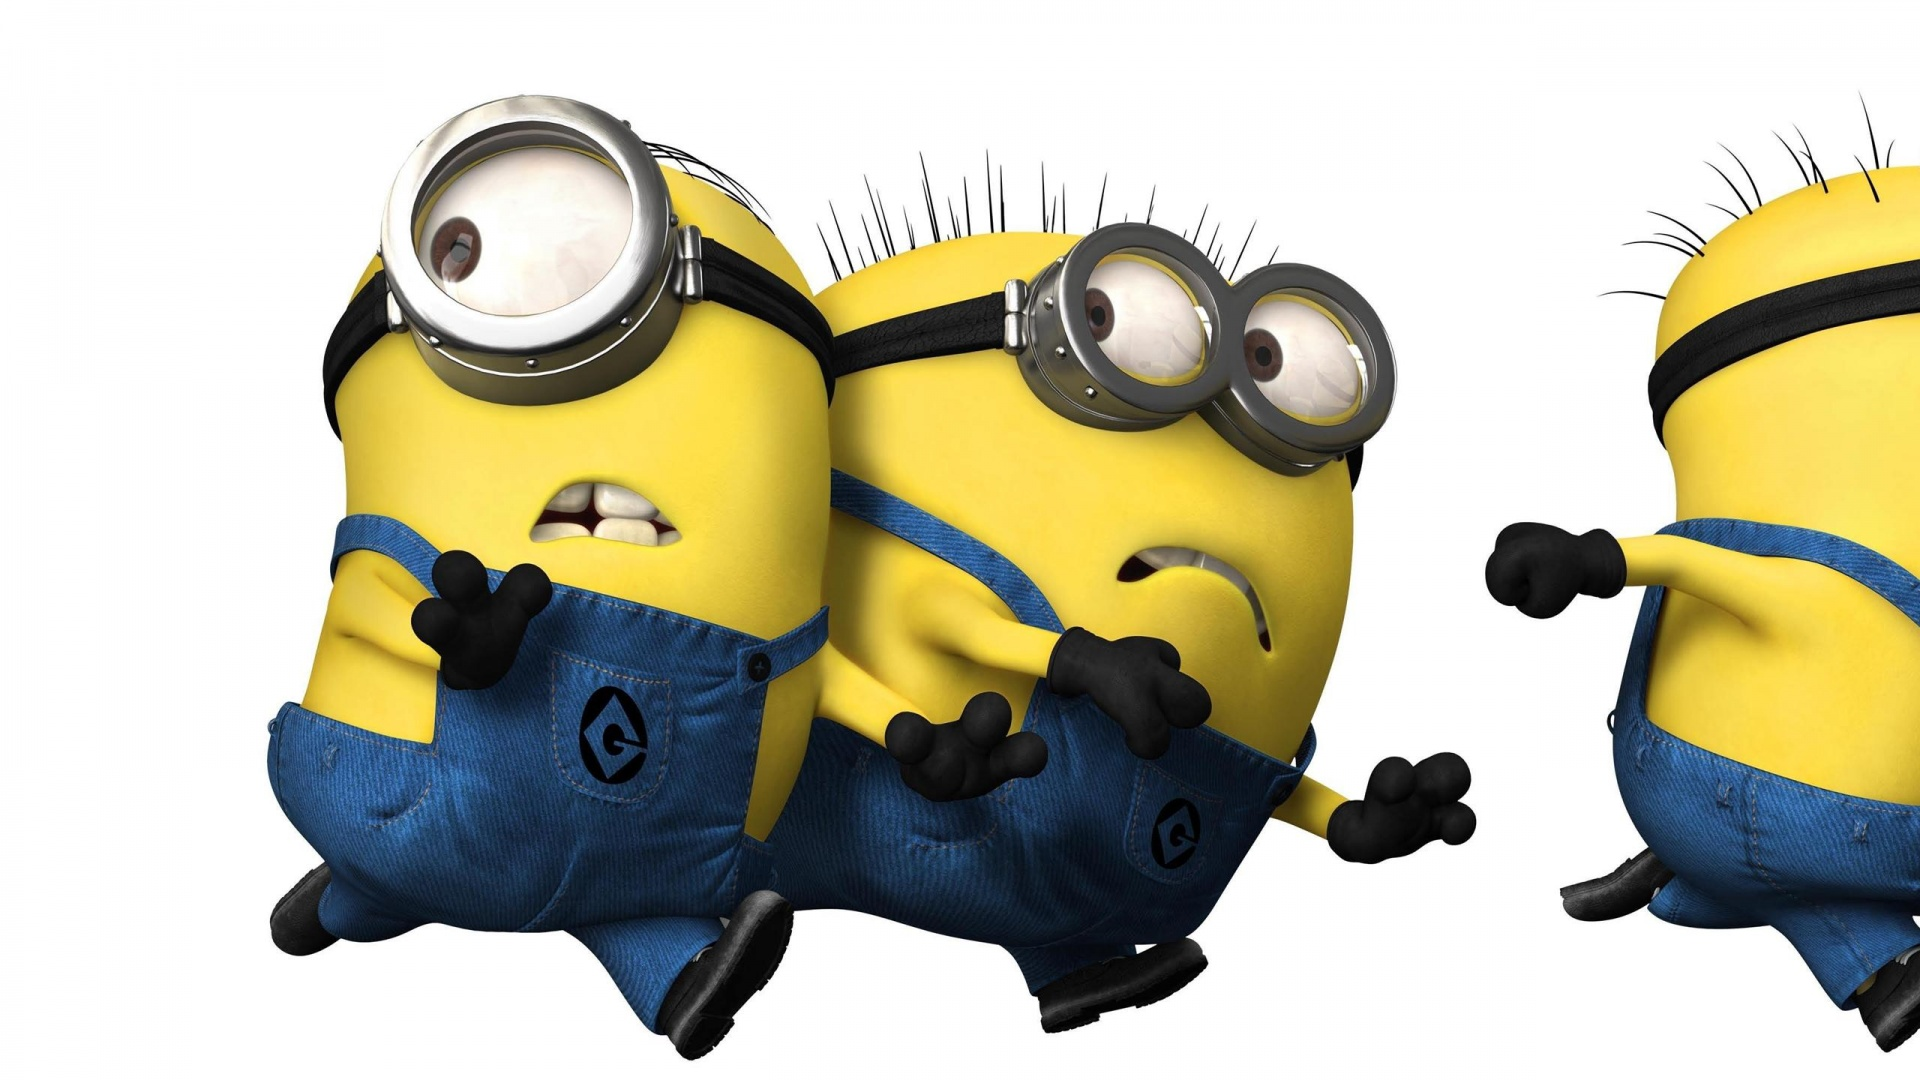 Selected Resoloution 1920x1080 wallpaper hd minions Size 389412 1920x1080